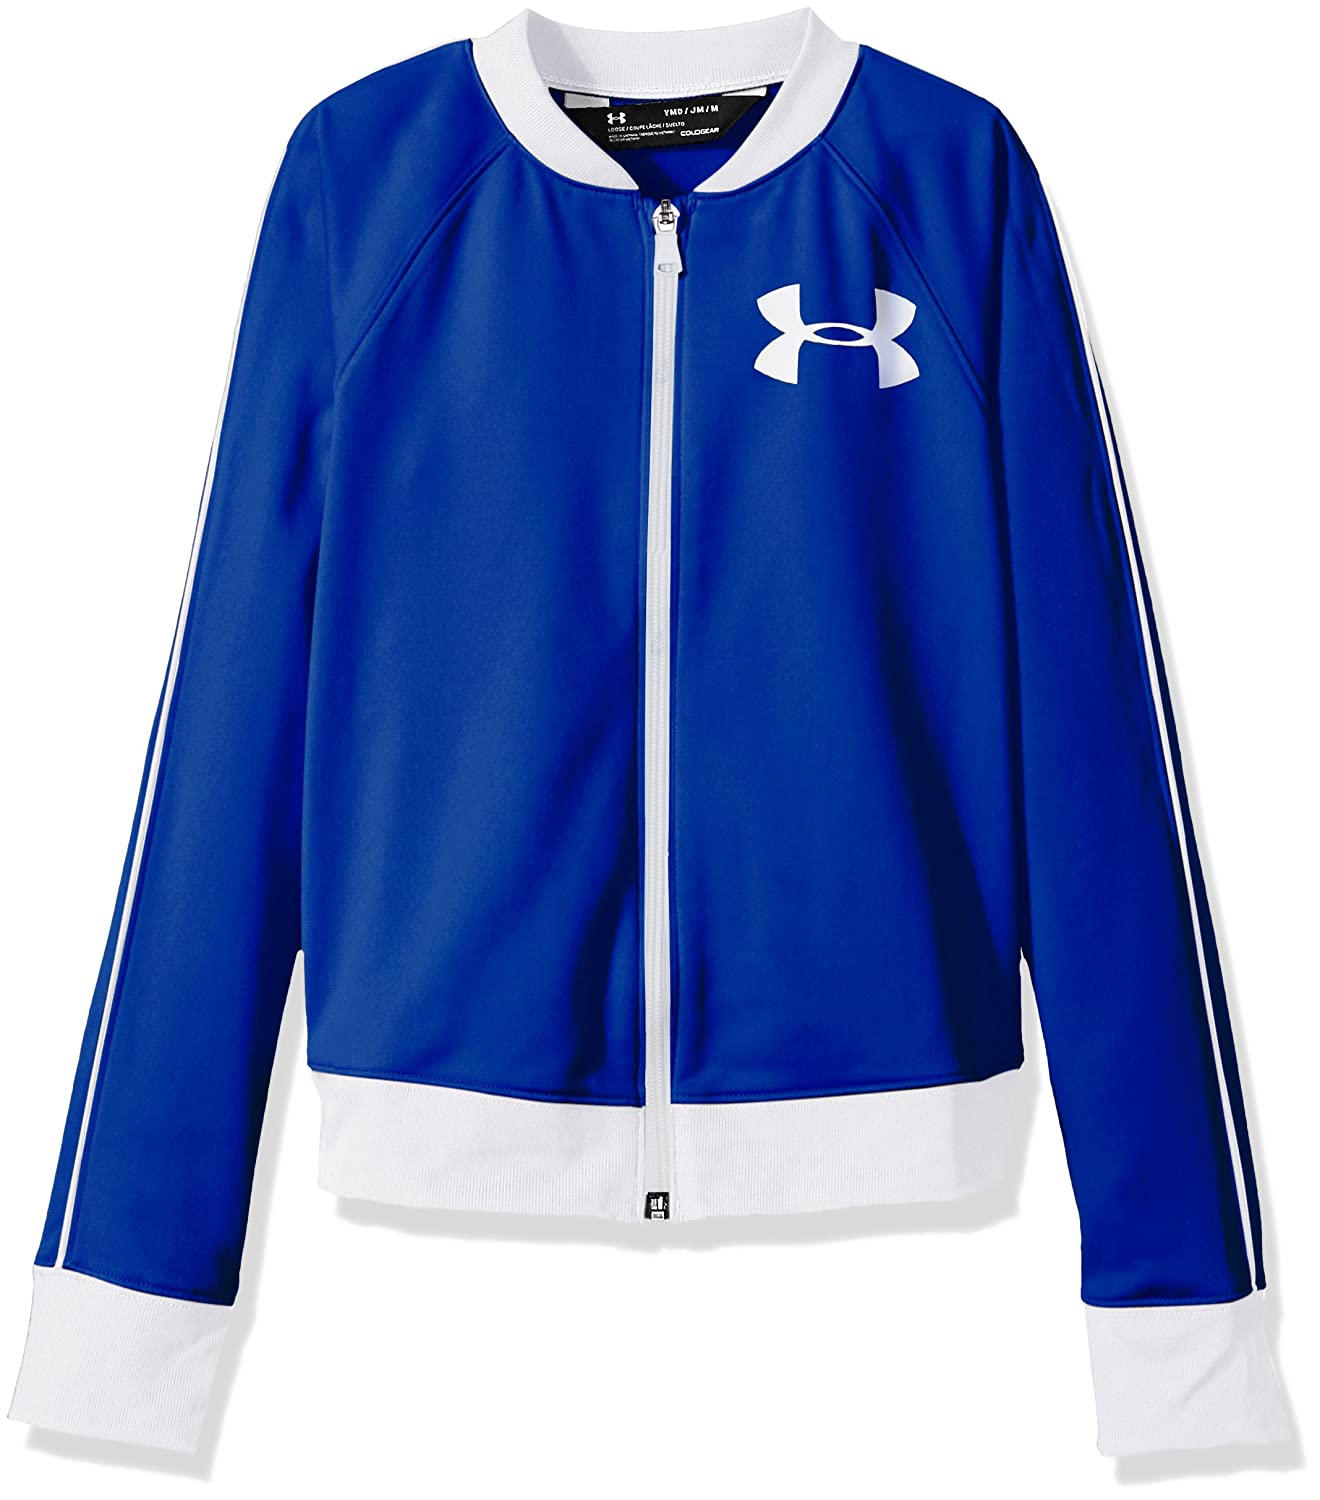 18a4f1db7c89 Amazon.com  Under Armour Girls  Track Jacket  Sports   Outdoors